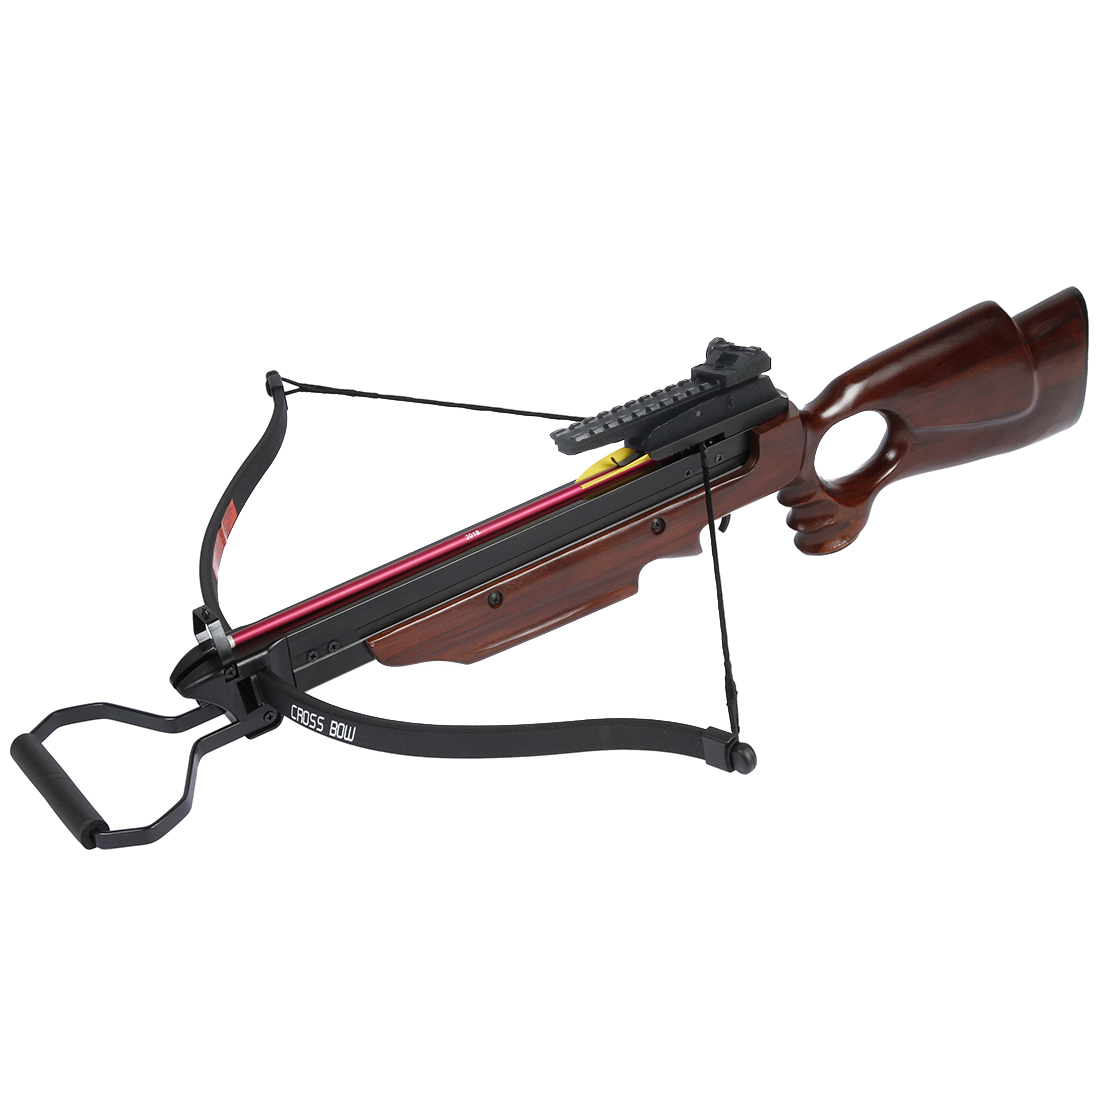 150 lb Black   Wood   Camouflage Camo Hunting Crossbow Archery Bow +7 Arrows + Rope Cocking Device 180 80 50 lbs by